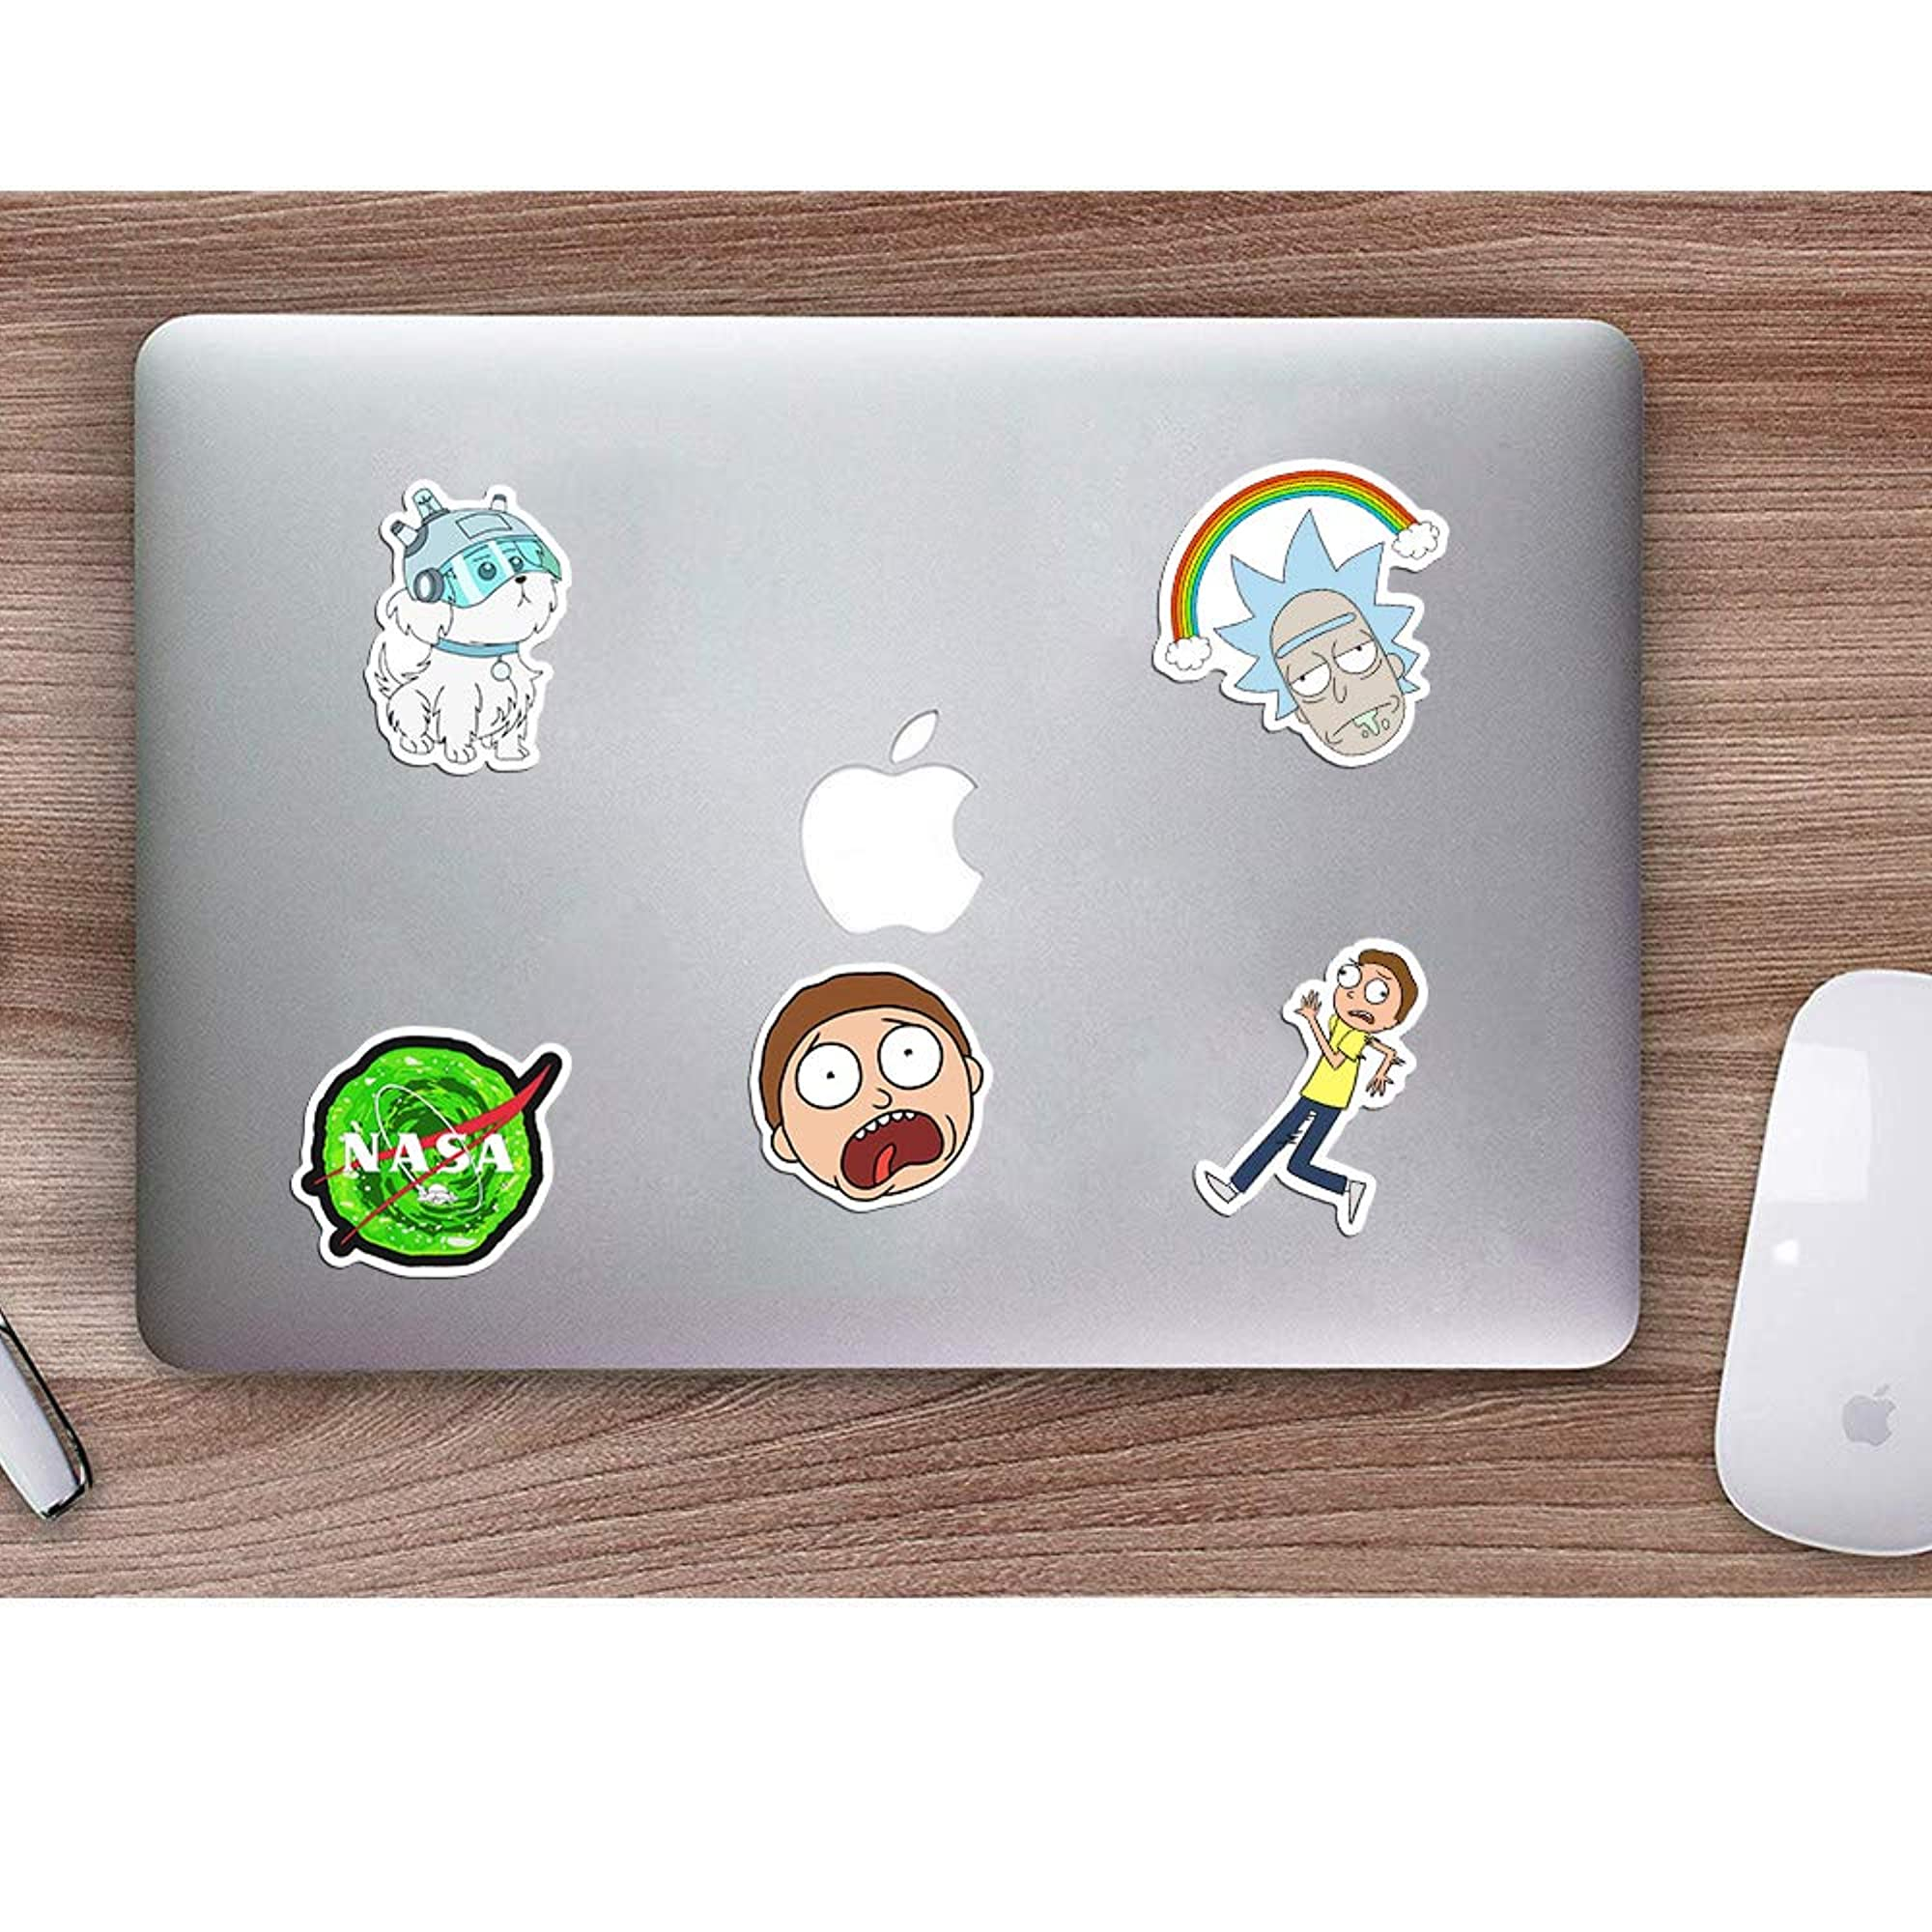 Super Cool Laptop Stickers And Decals.